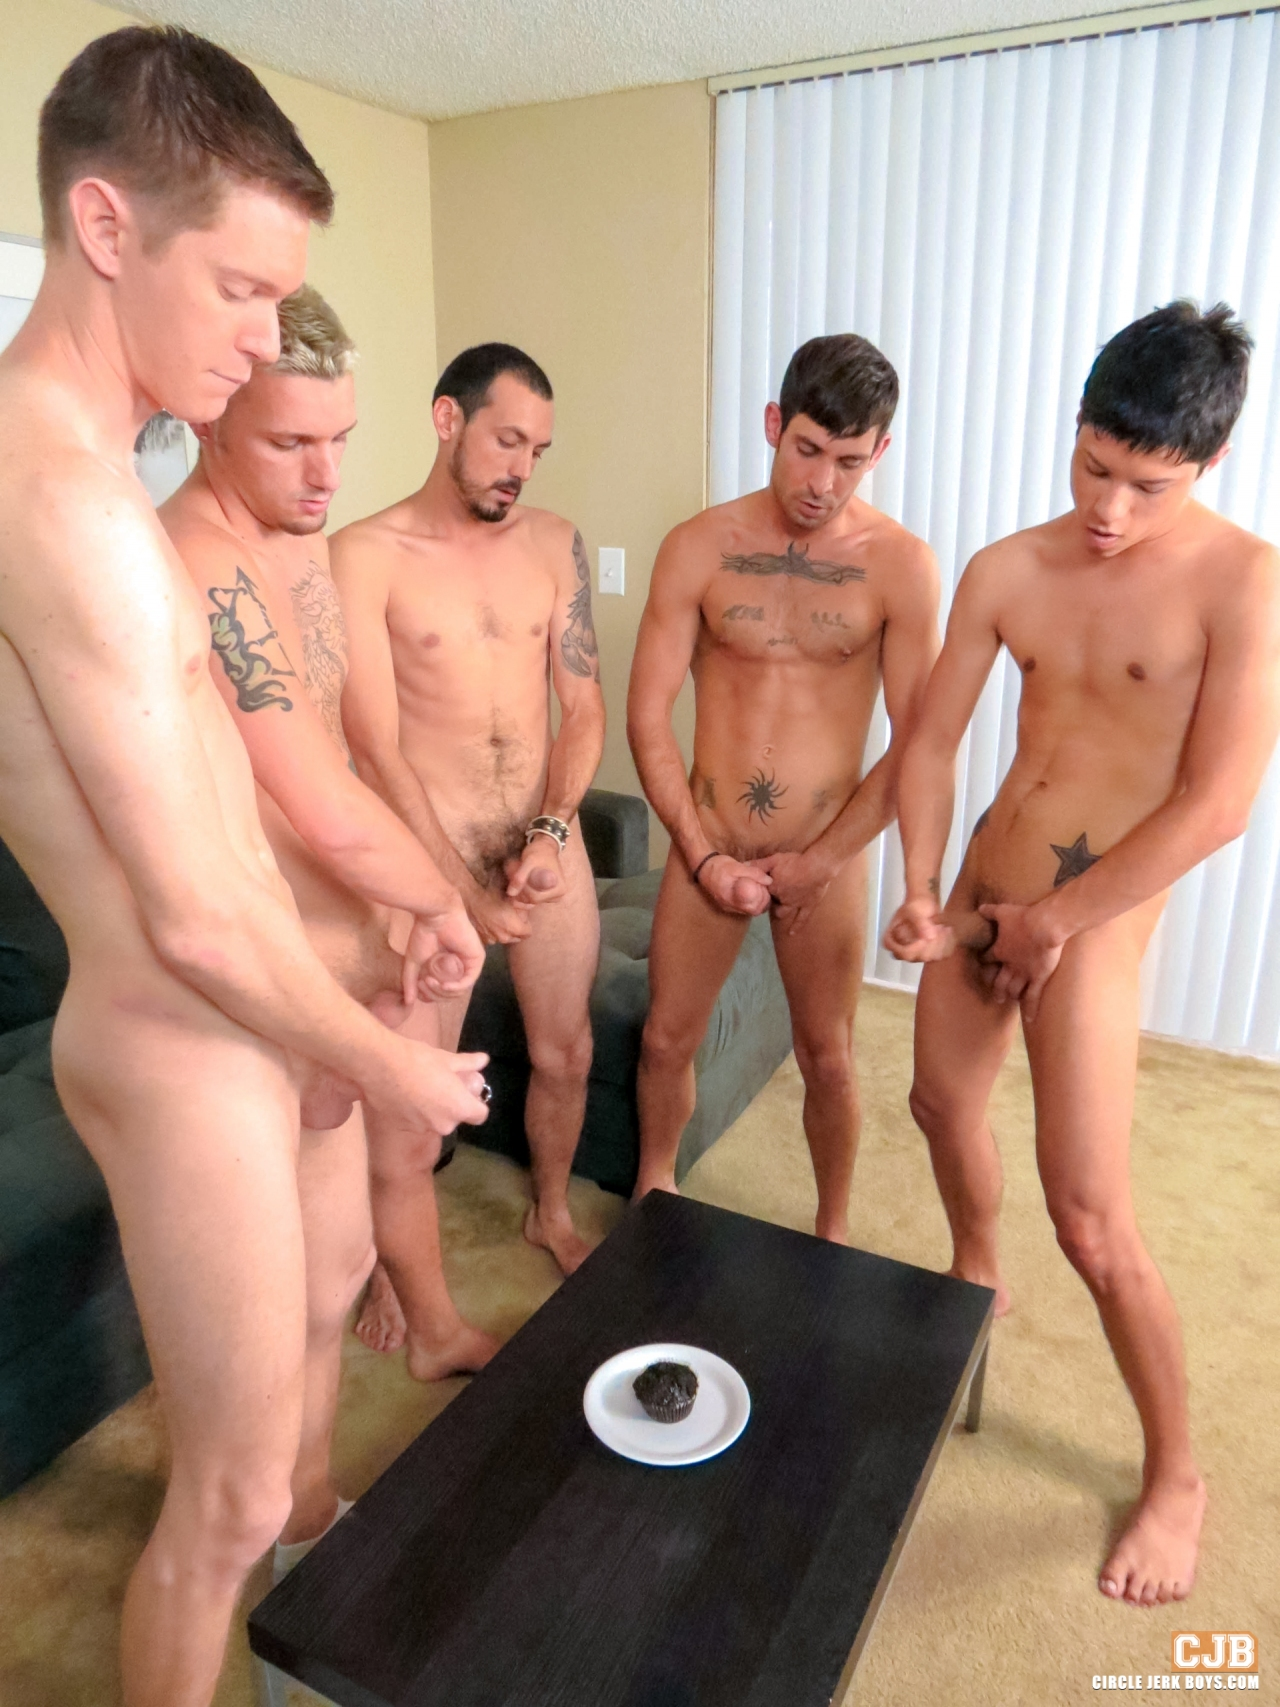 group of guys jerking together